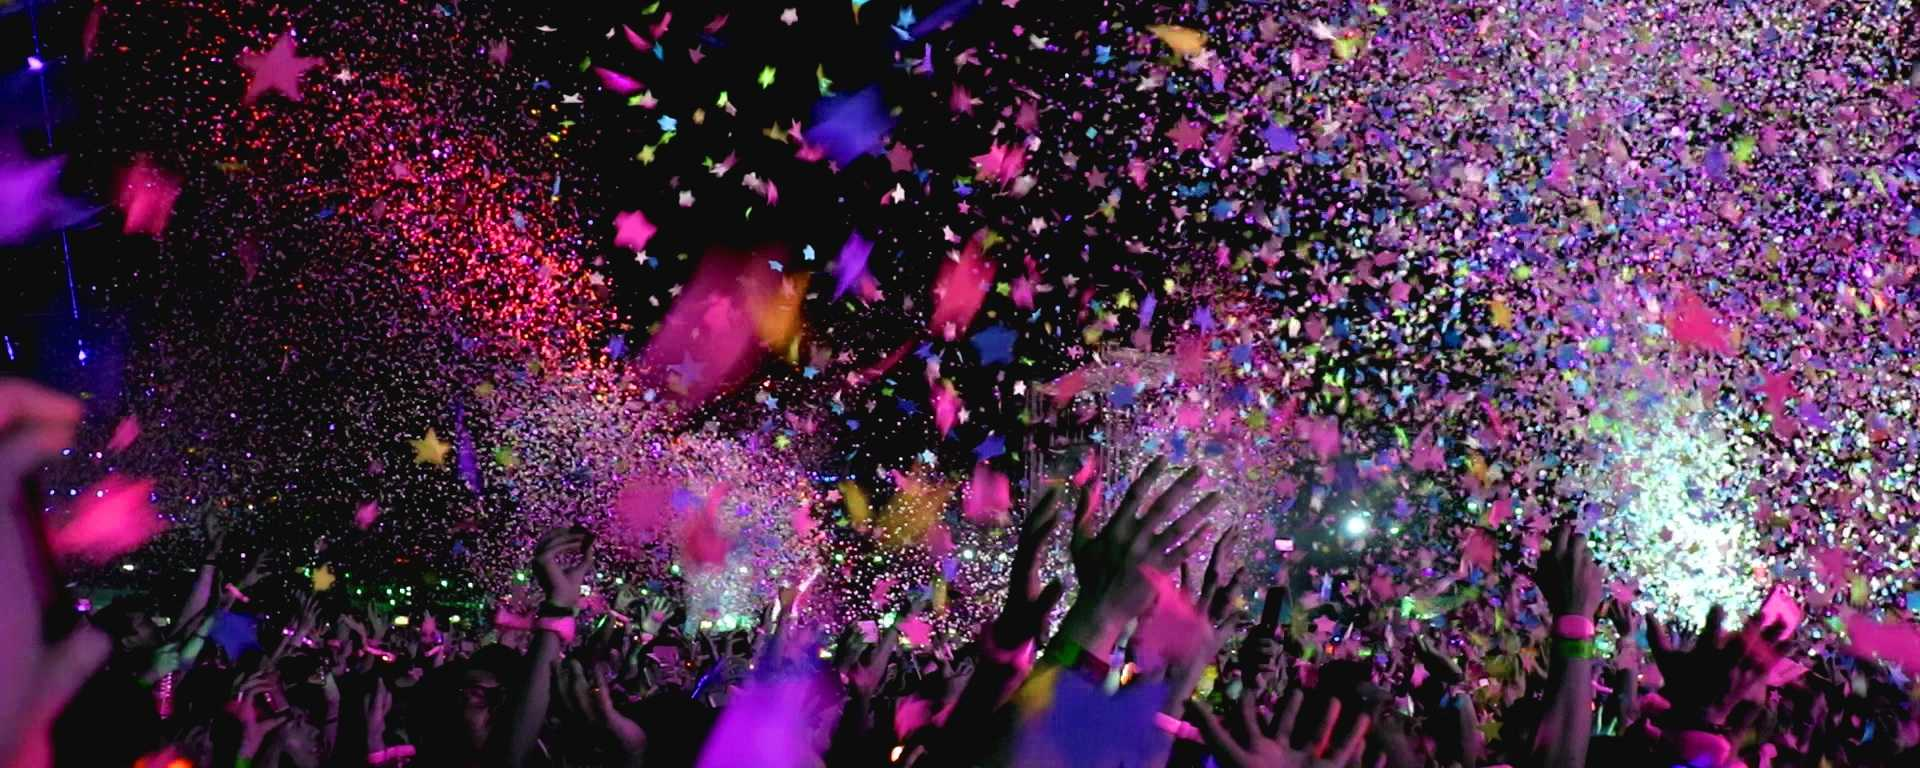 Festival, concerts, spectaclesFestival, concerts, spectacles